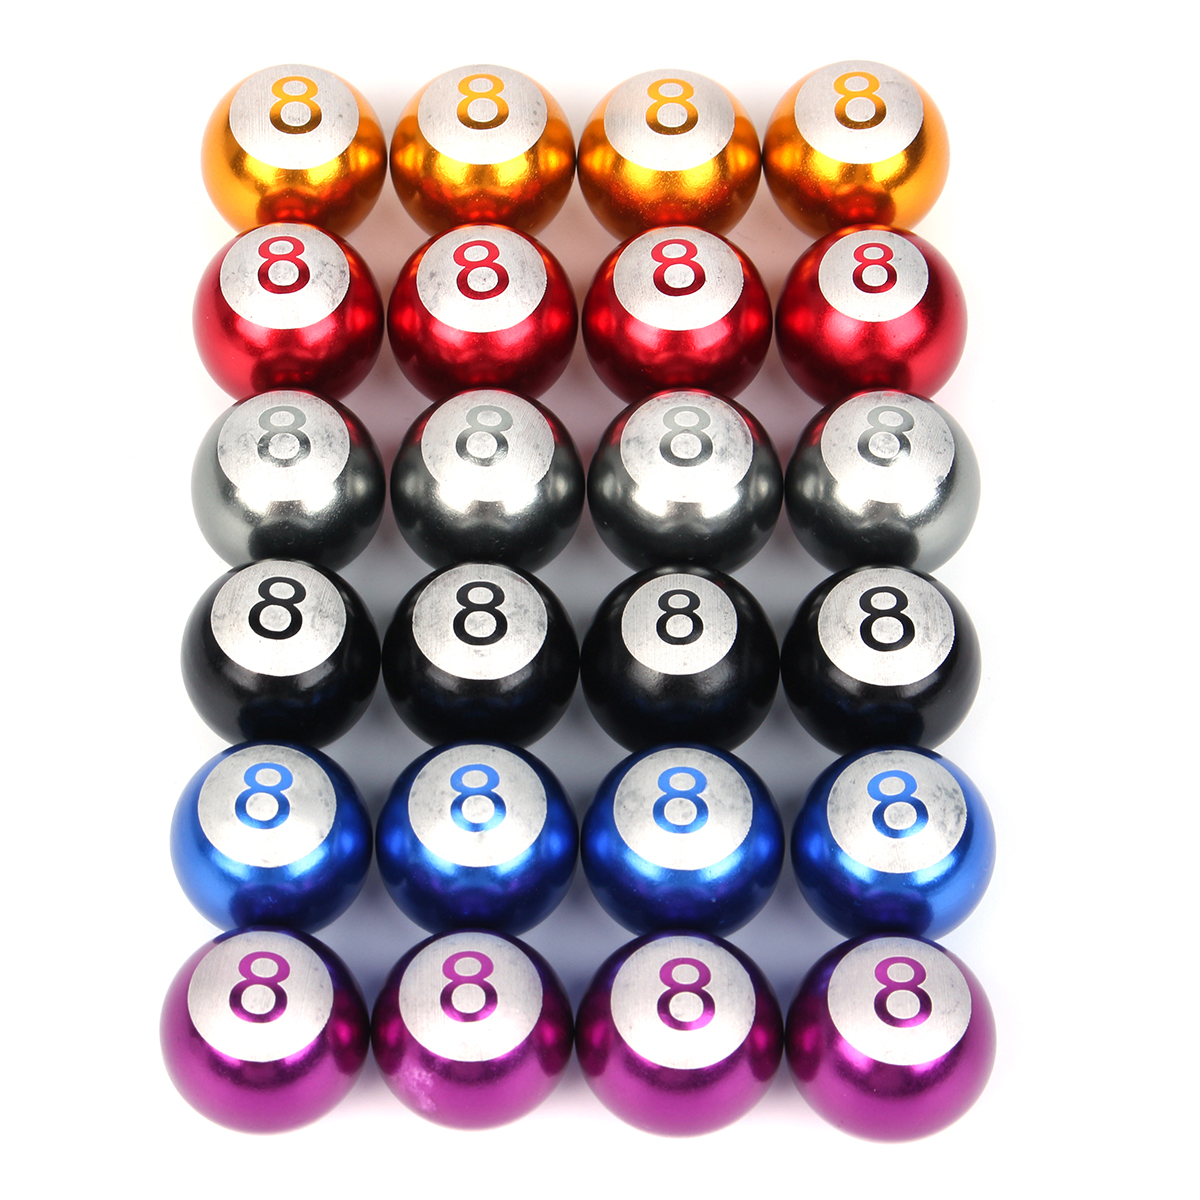 4Pcs Universal Wheel Tire Valve Caps Cover No.8 Billiards Ball Multi Color